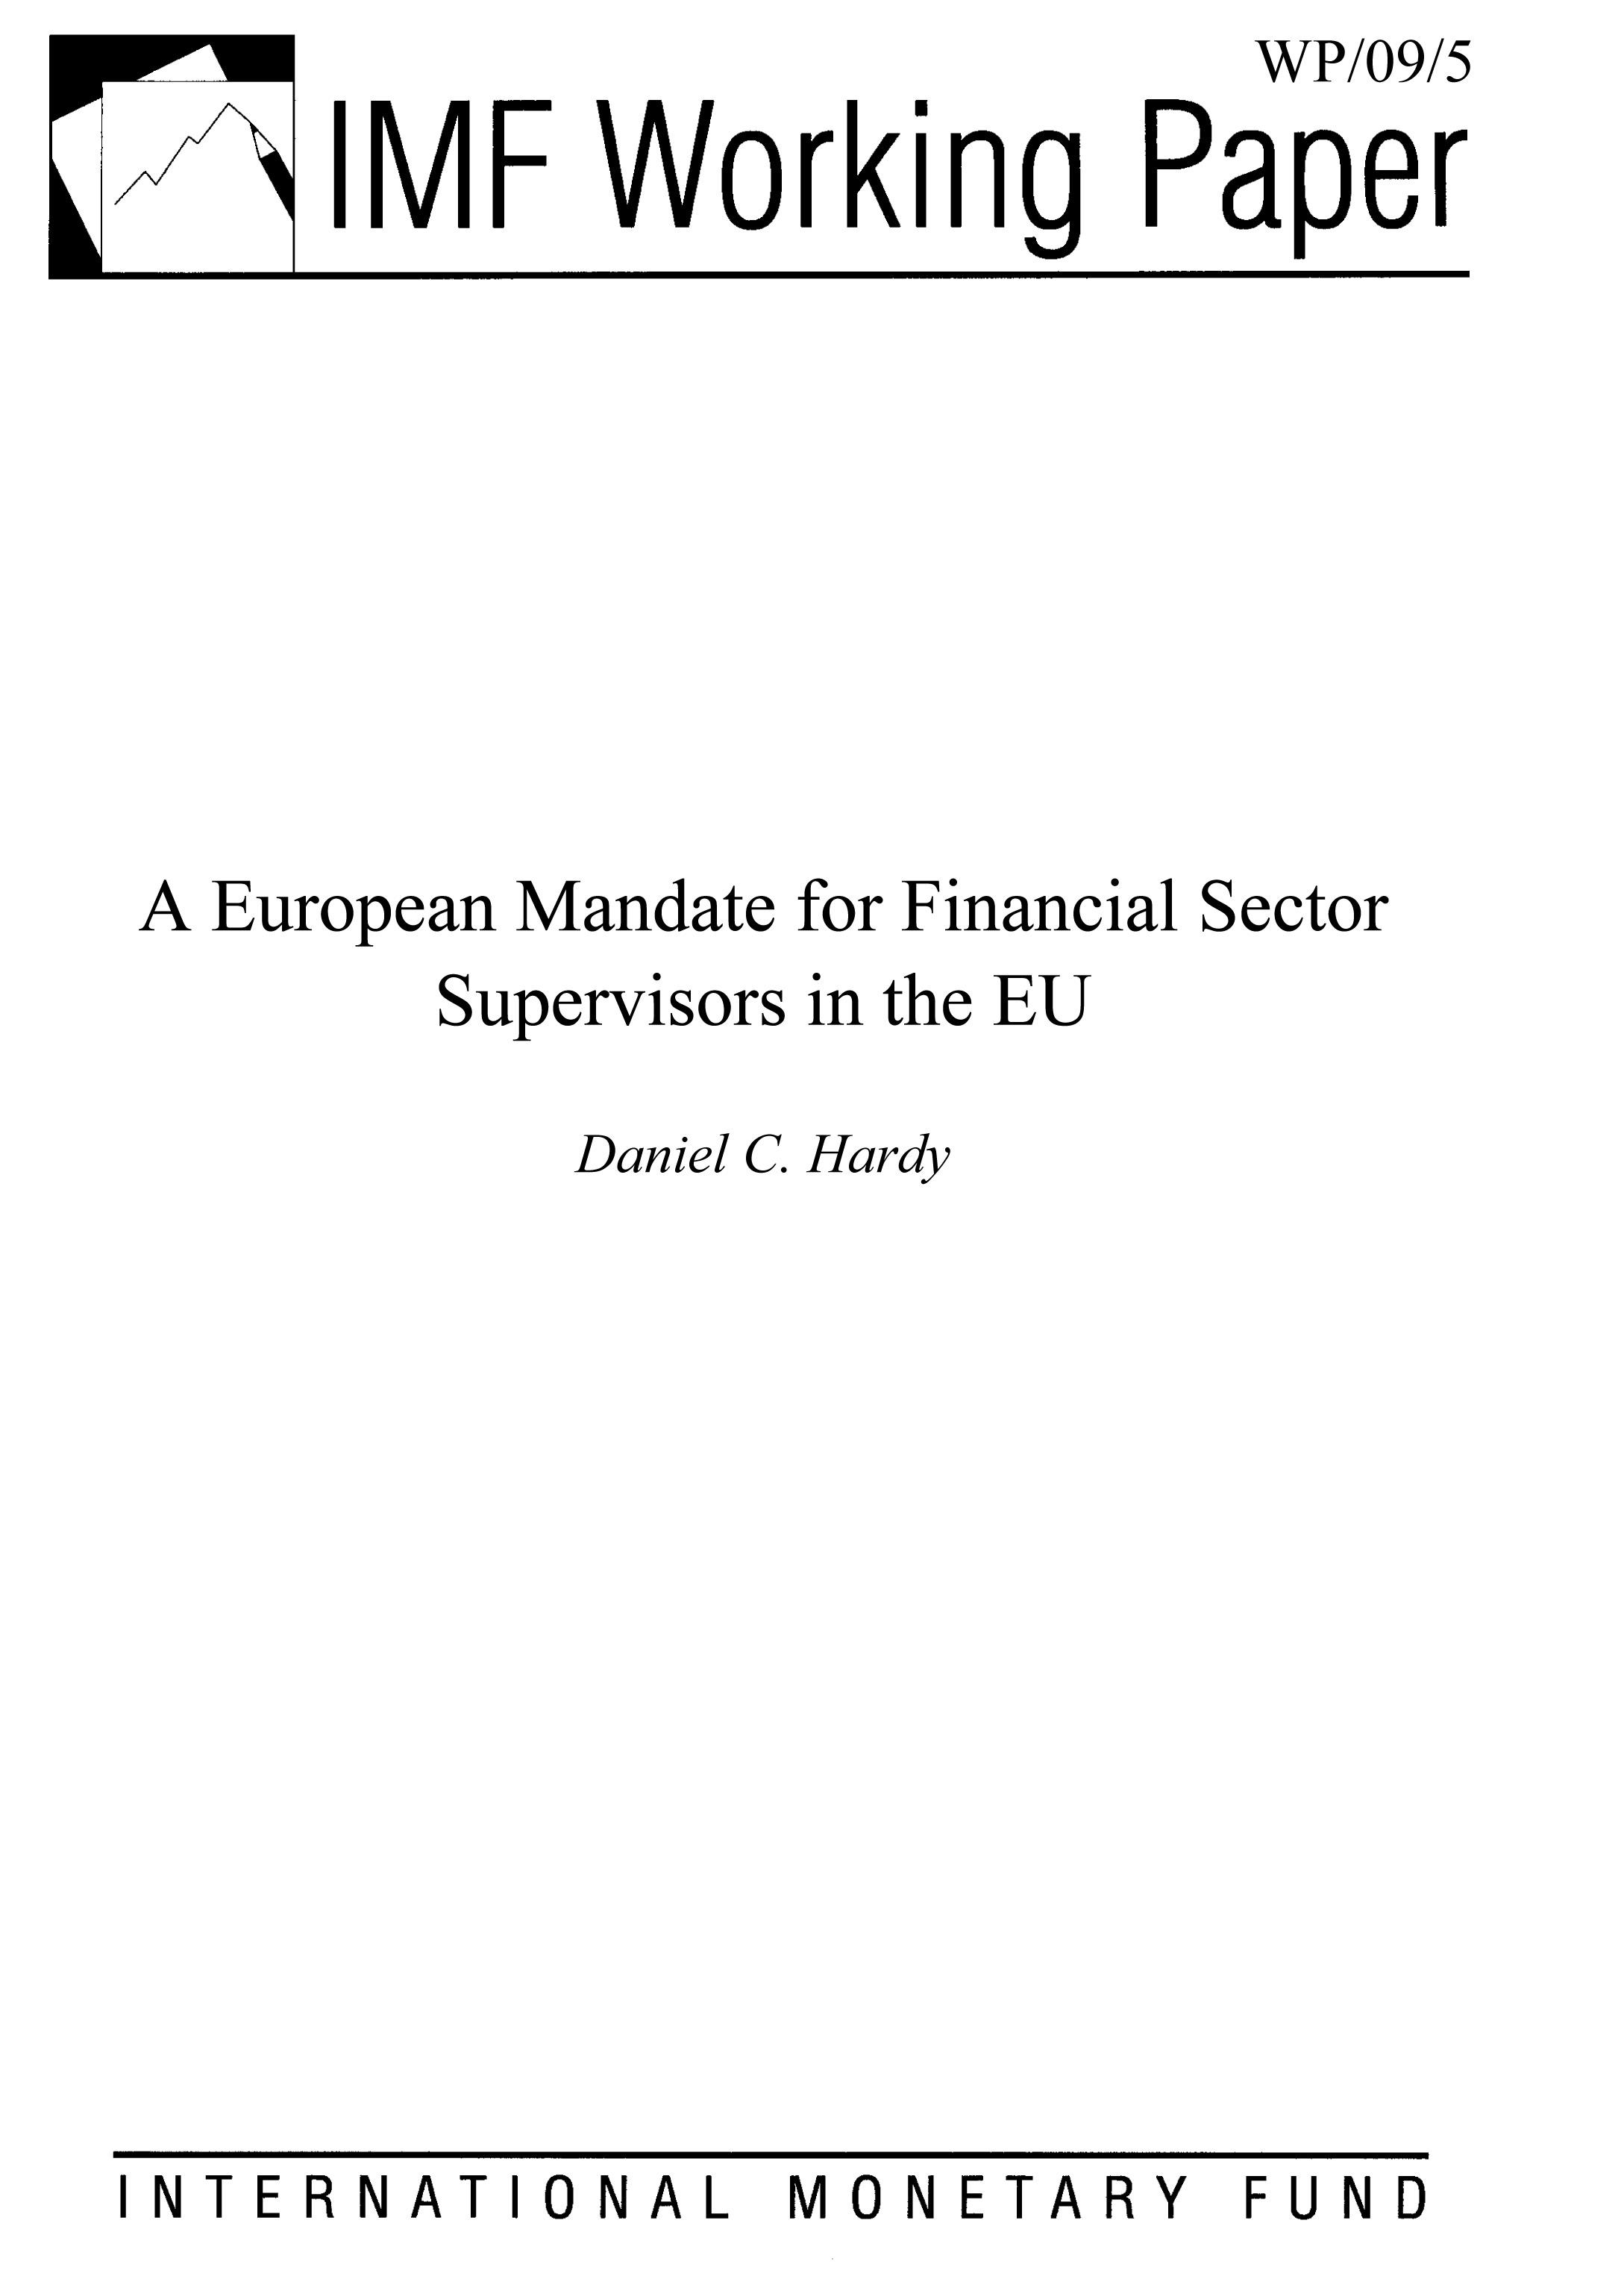 A European Mandate for Financial Sector Supervisors in the EU